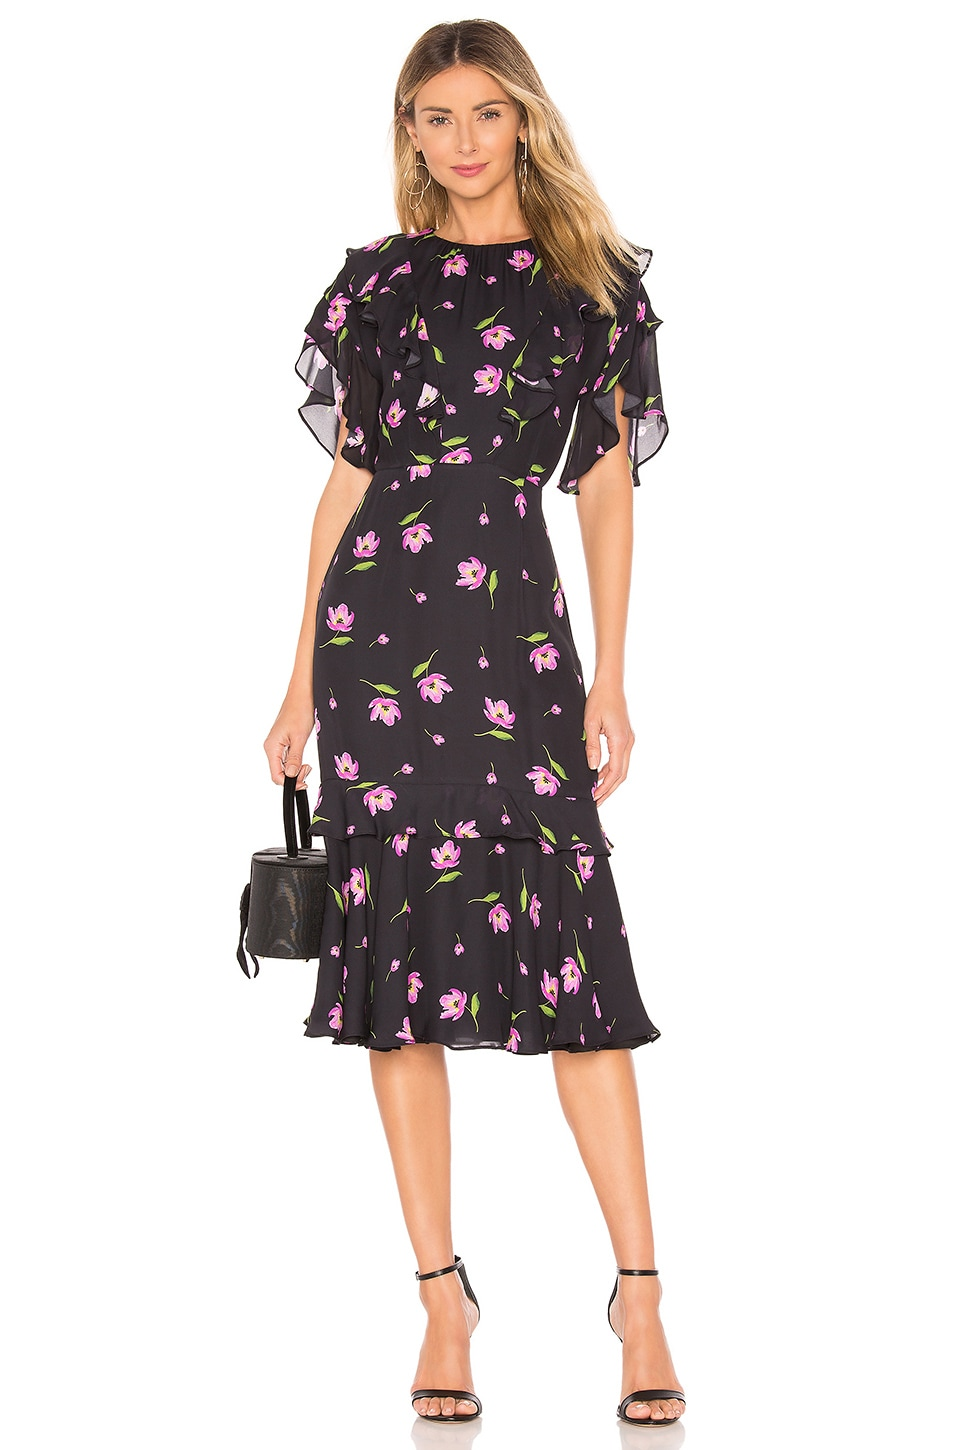 MILLY Gia Dress in Black & Pink